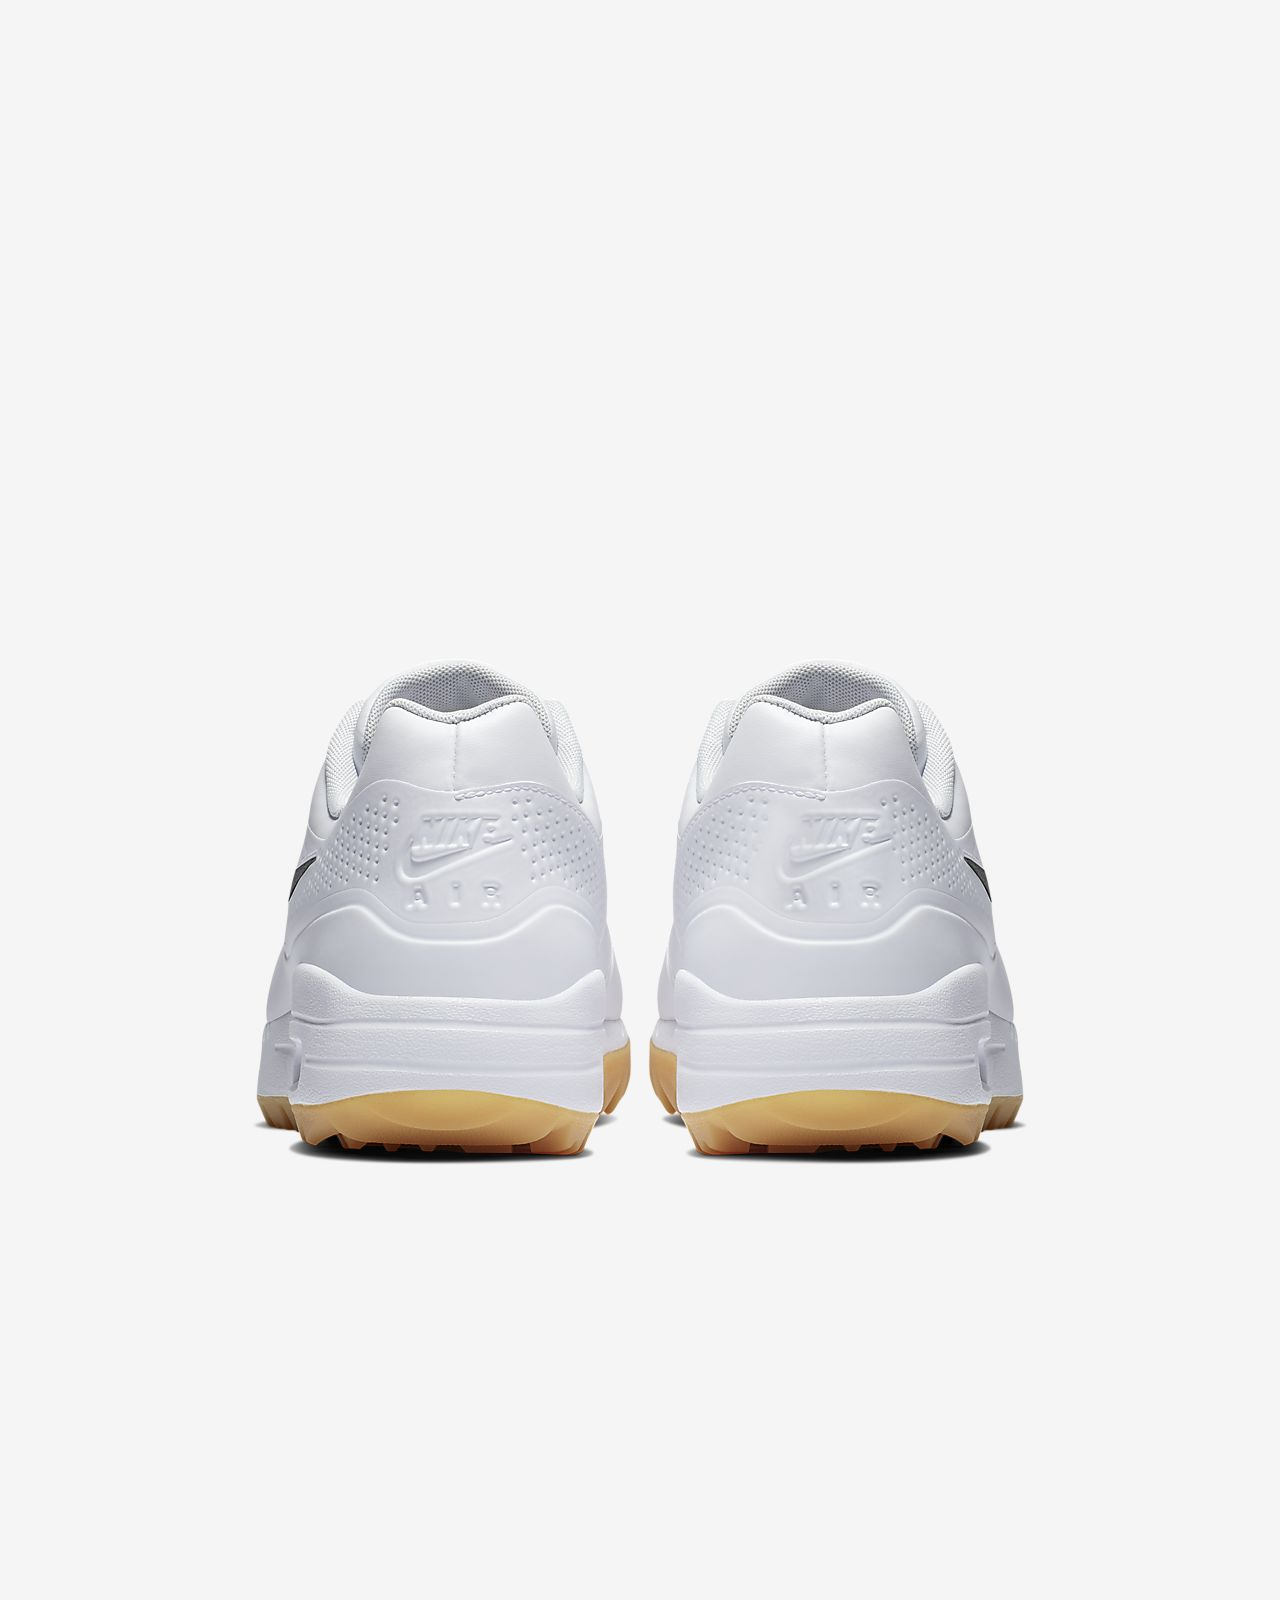 promo code 1b756 d64e2 ... Nike Air Max 1 G Men s Golf Shoe